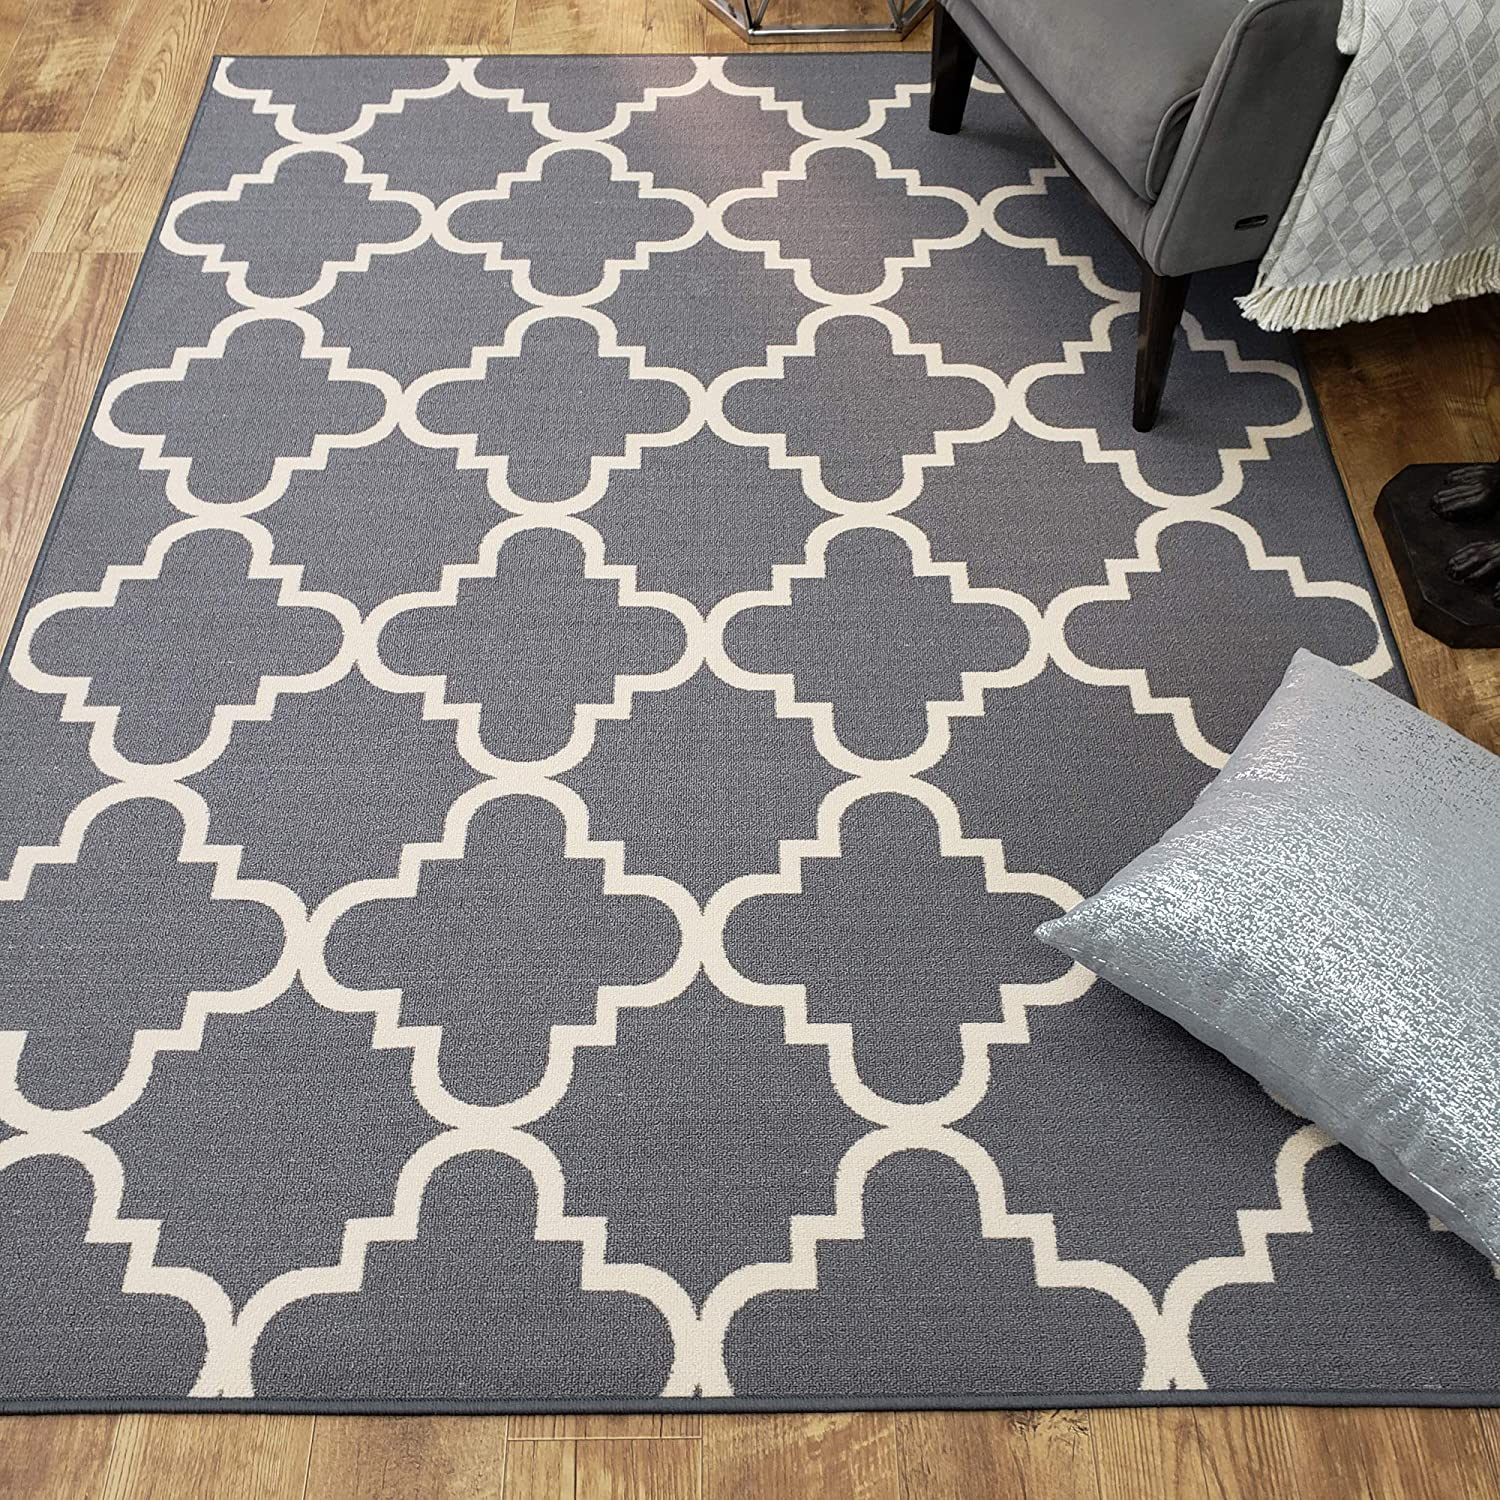 Area Rug 3x5 Gray Trellis Kitchen Rugs and mats | Rubber Backed Non Skid Rug Living Room Bathroom Nursery Home Decor Under Door Entryway Floor Non Slip Washable | Made in Europe